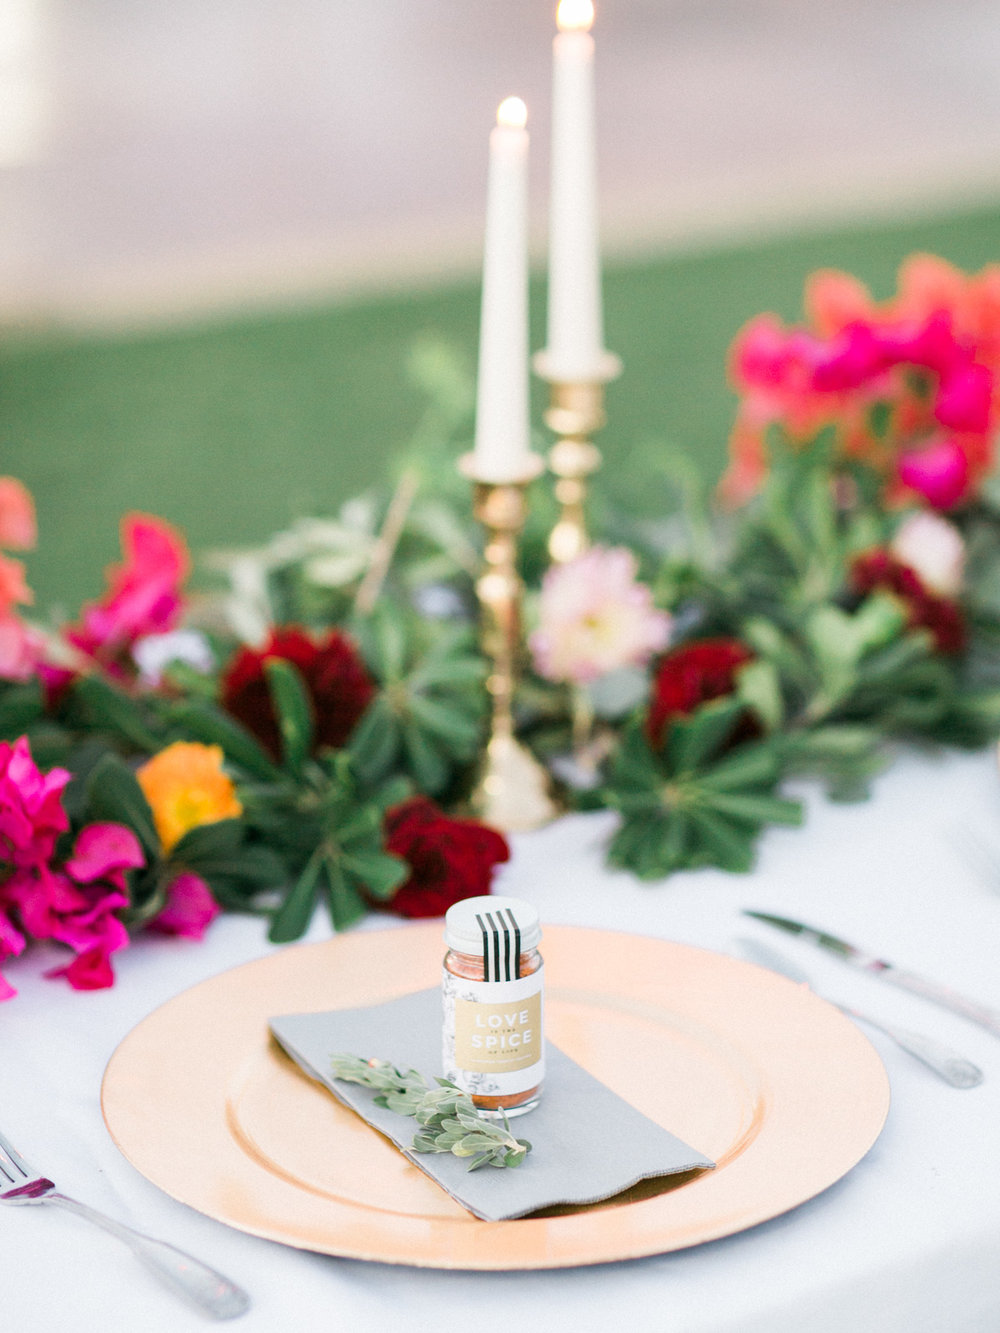 Gorgeous wedding table setting with brass candlesticks, greenery and bouganvillea